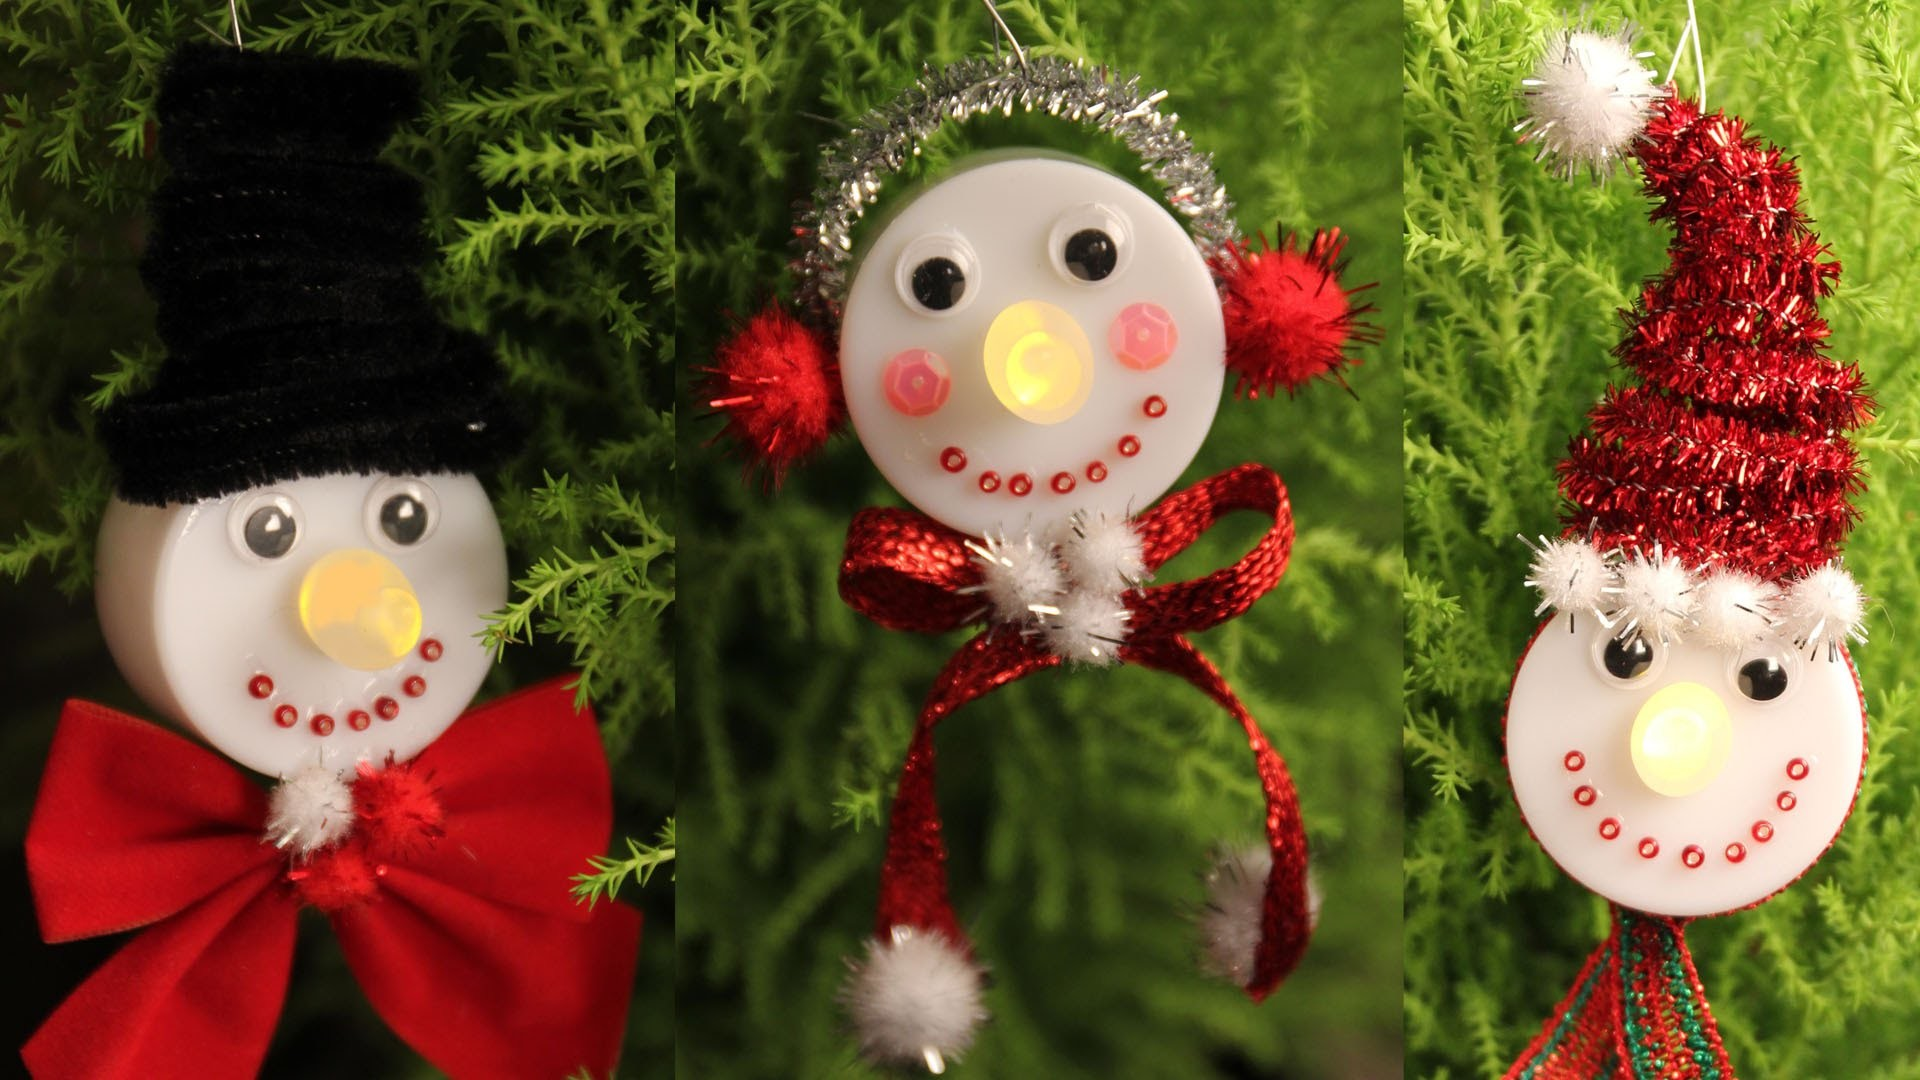 Snowman Tea Light Christmas Ornaments  - The Cutest DIY!